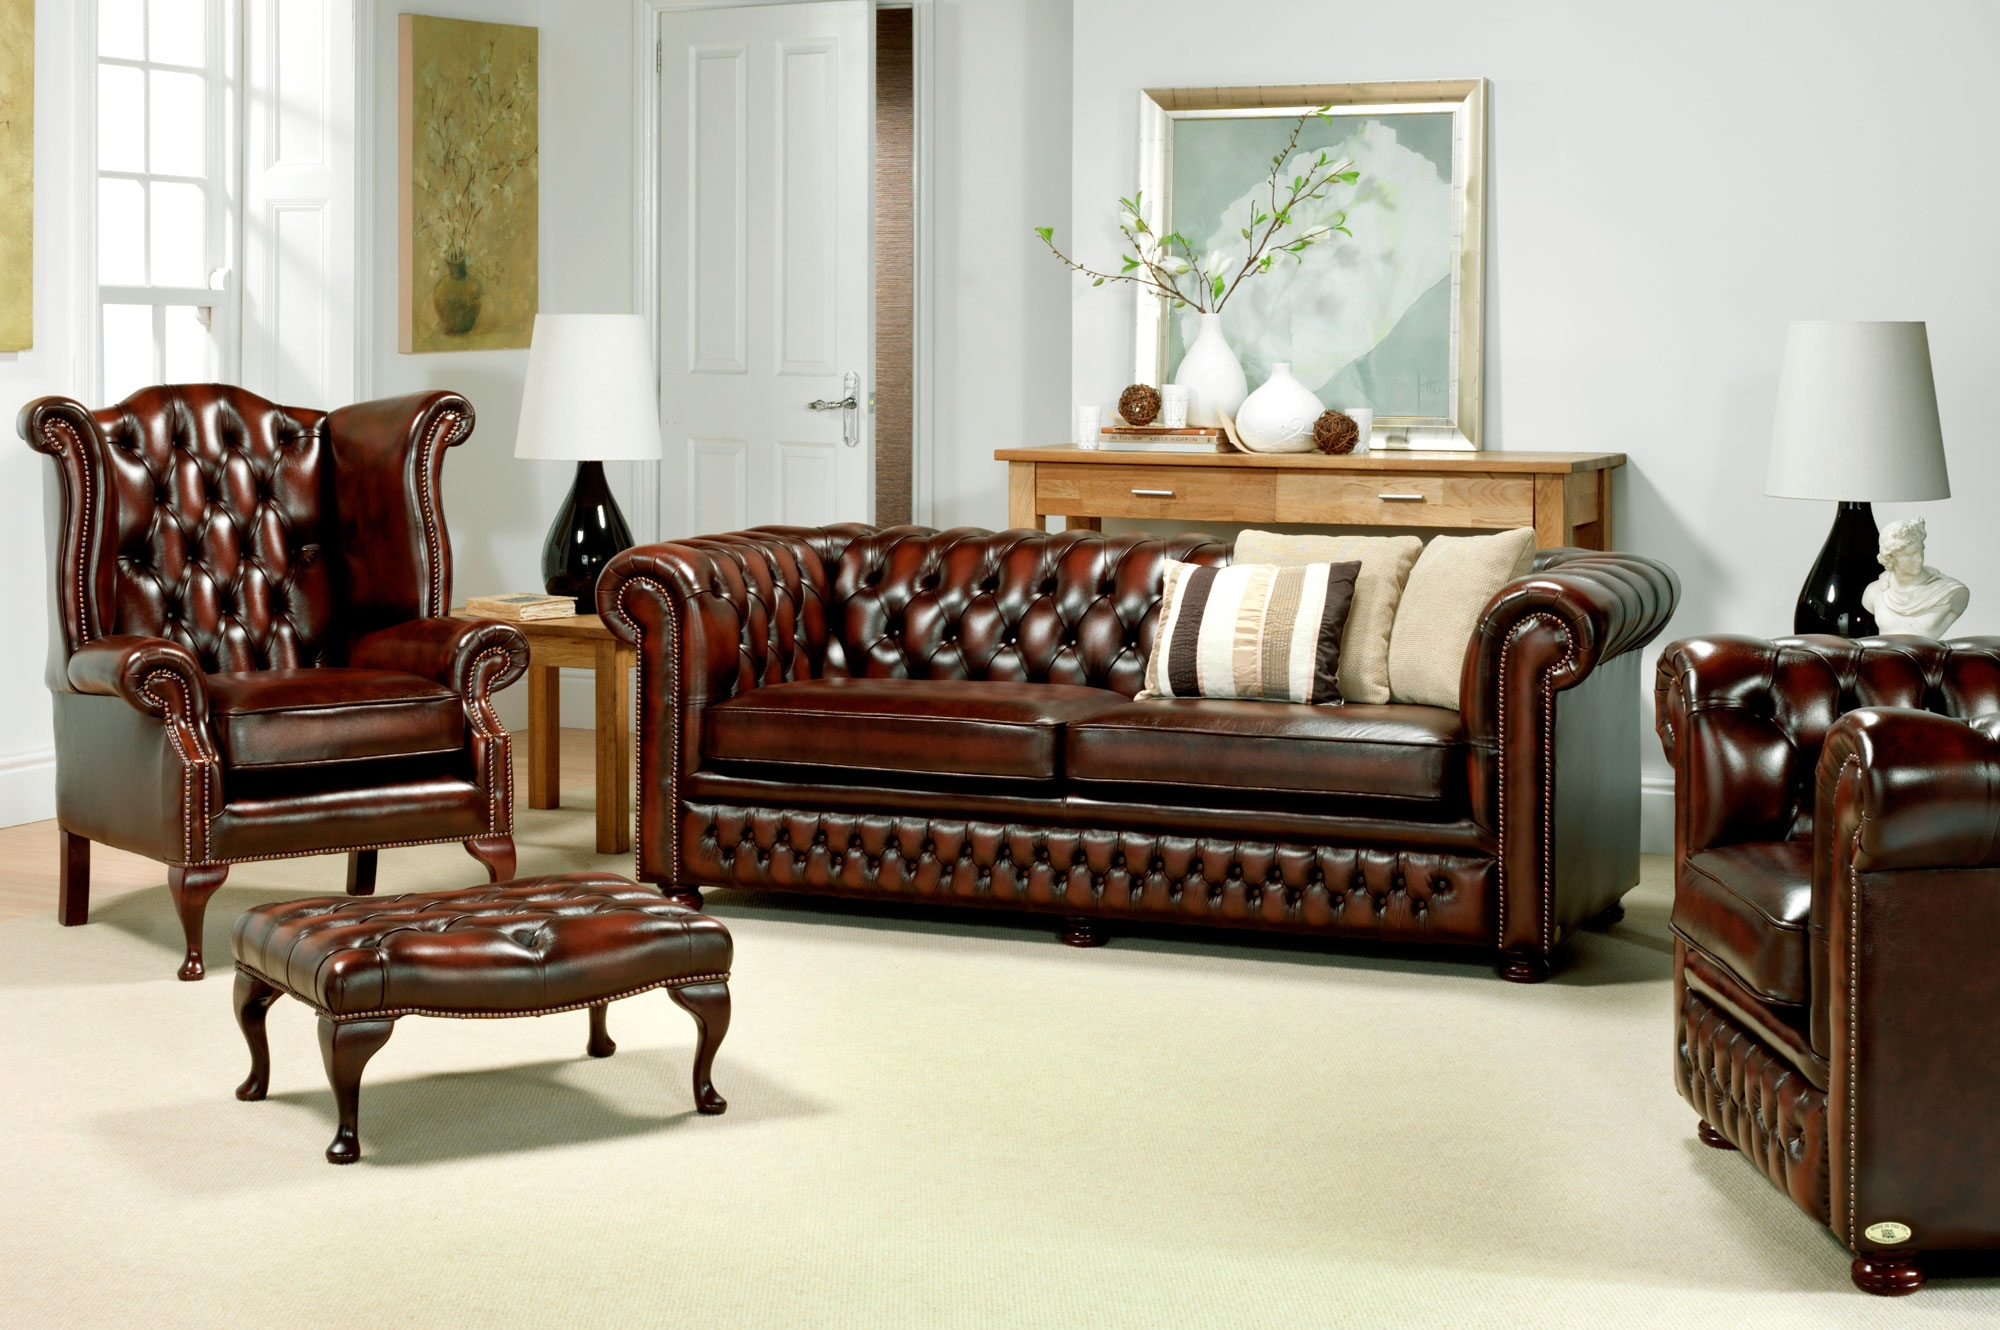 Featured Image of Chesterfield Sofa And Chairs